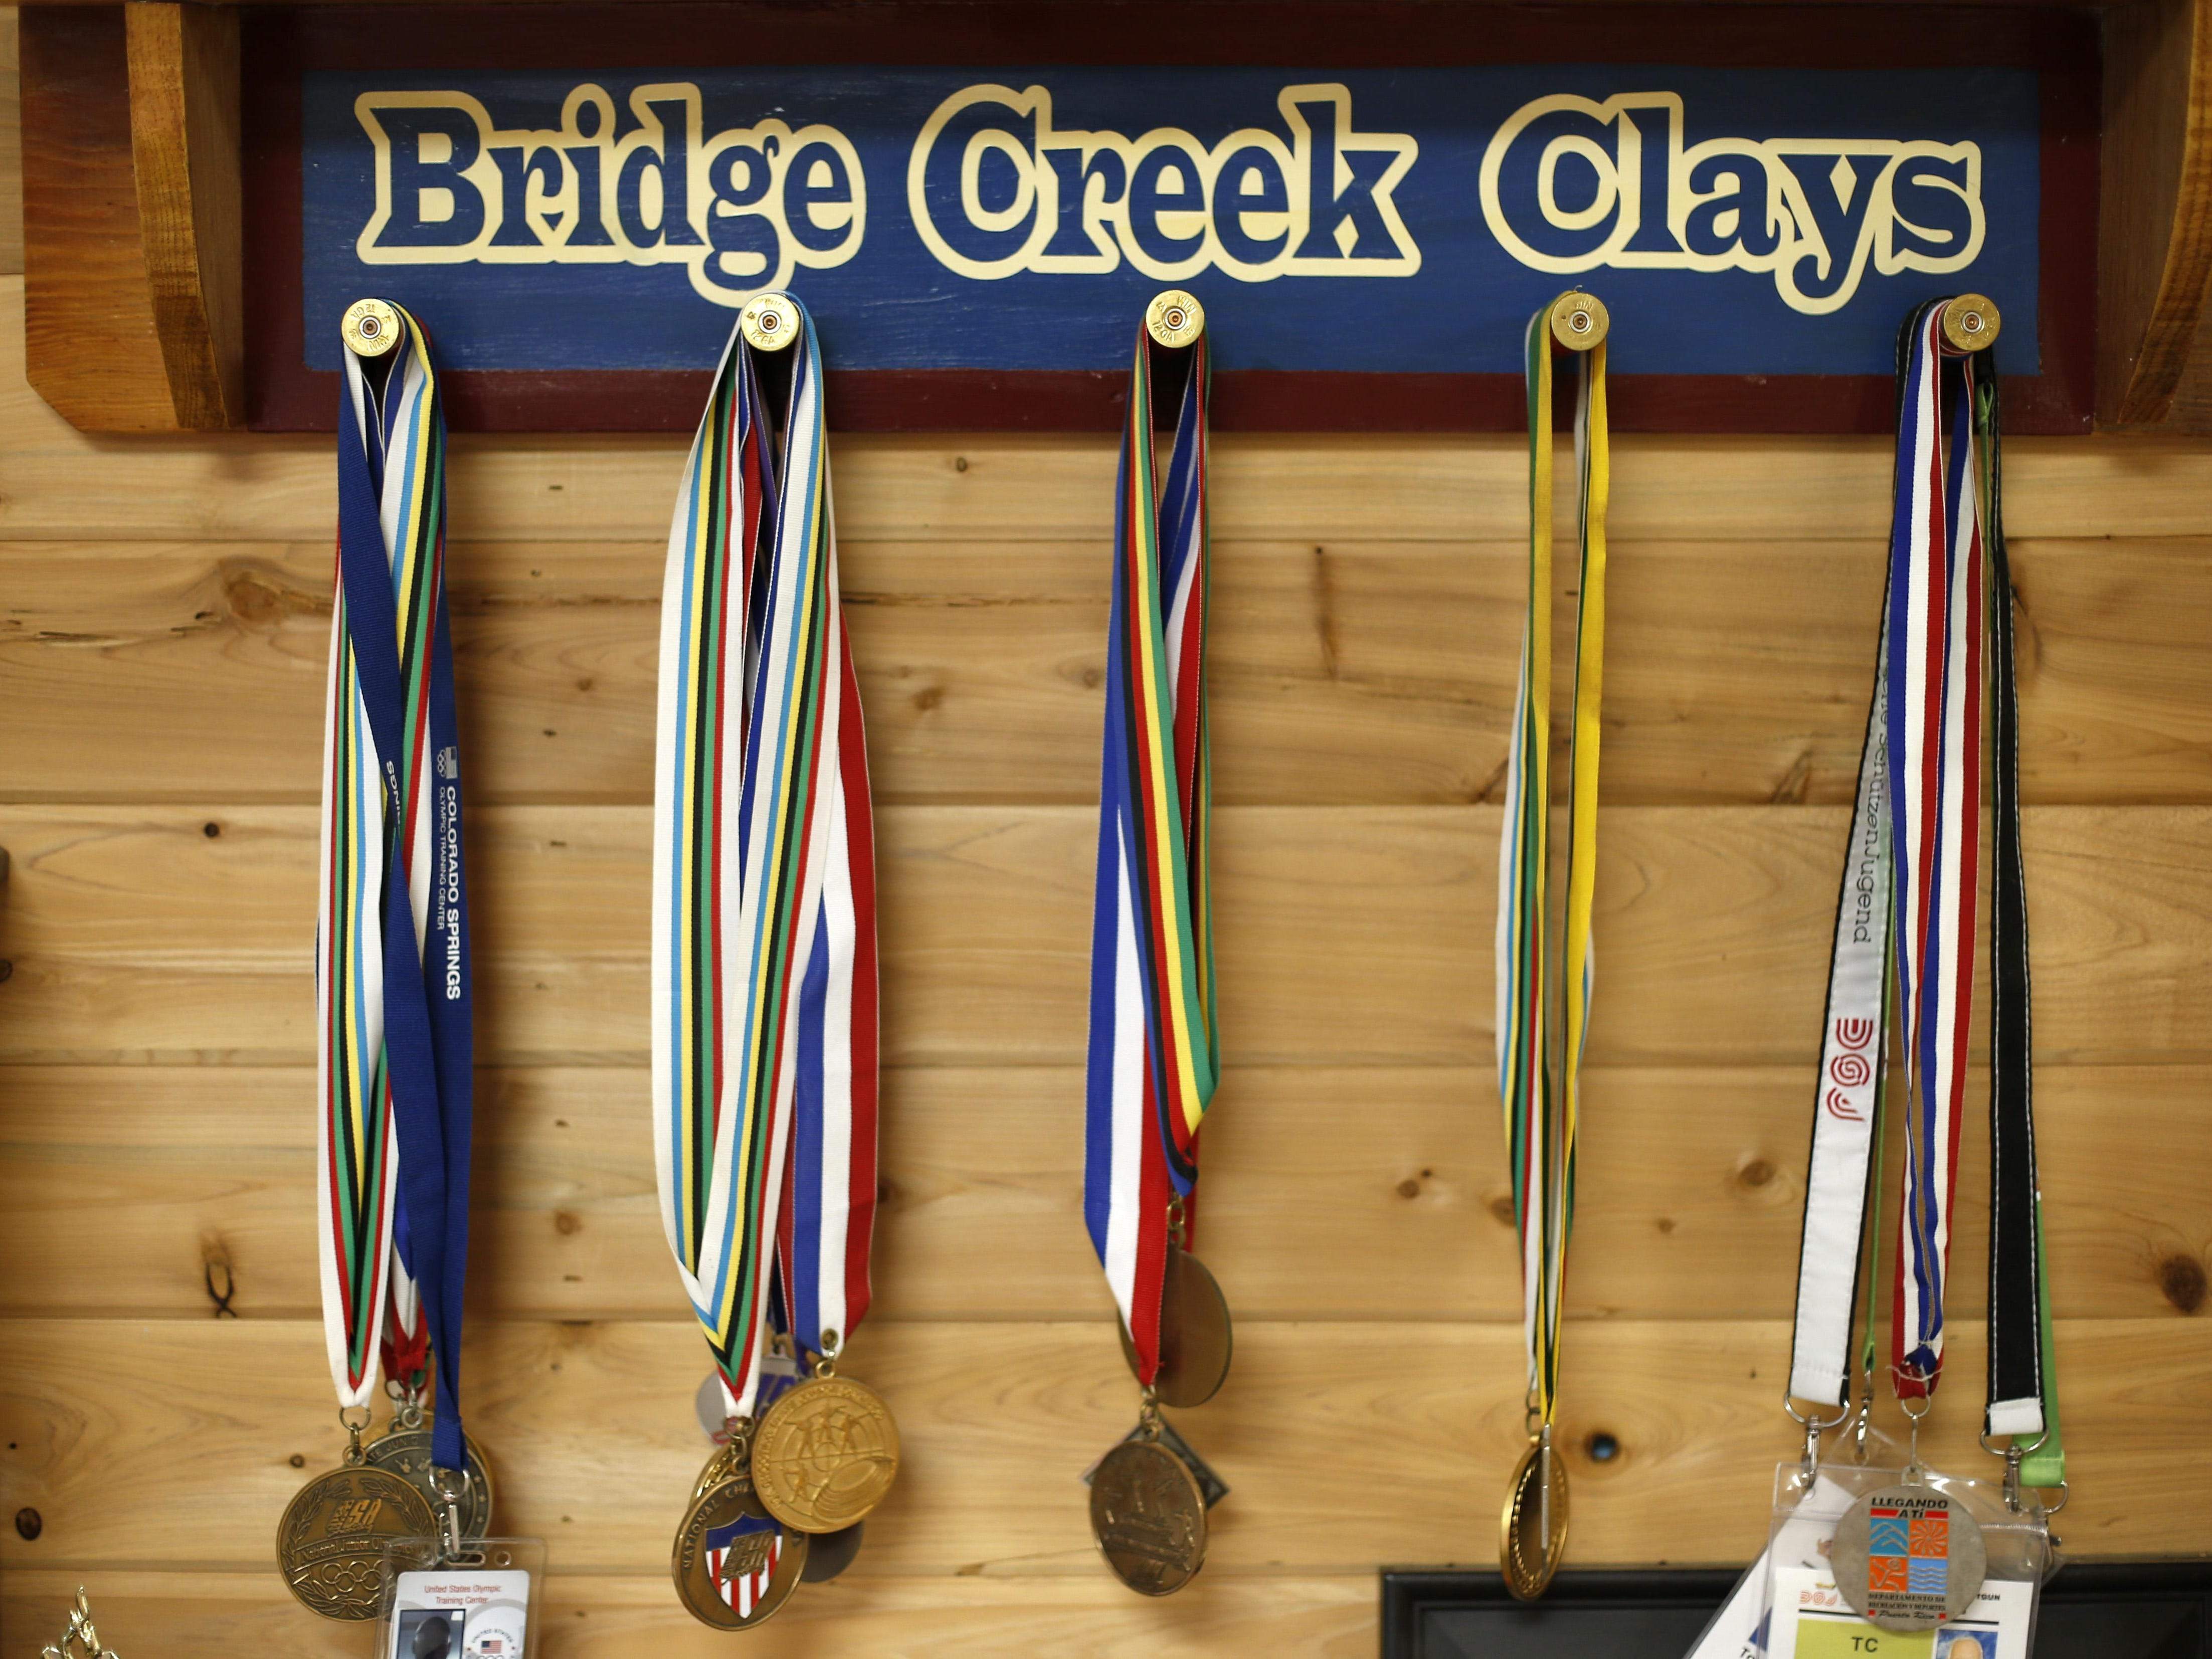 Medals hang on the wall at the Bridge Creek Clays South Georgia Youth Shooting Club on Tuesday, June 30, 2015.